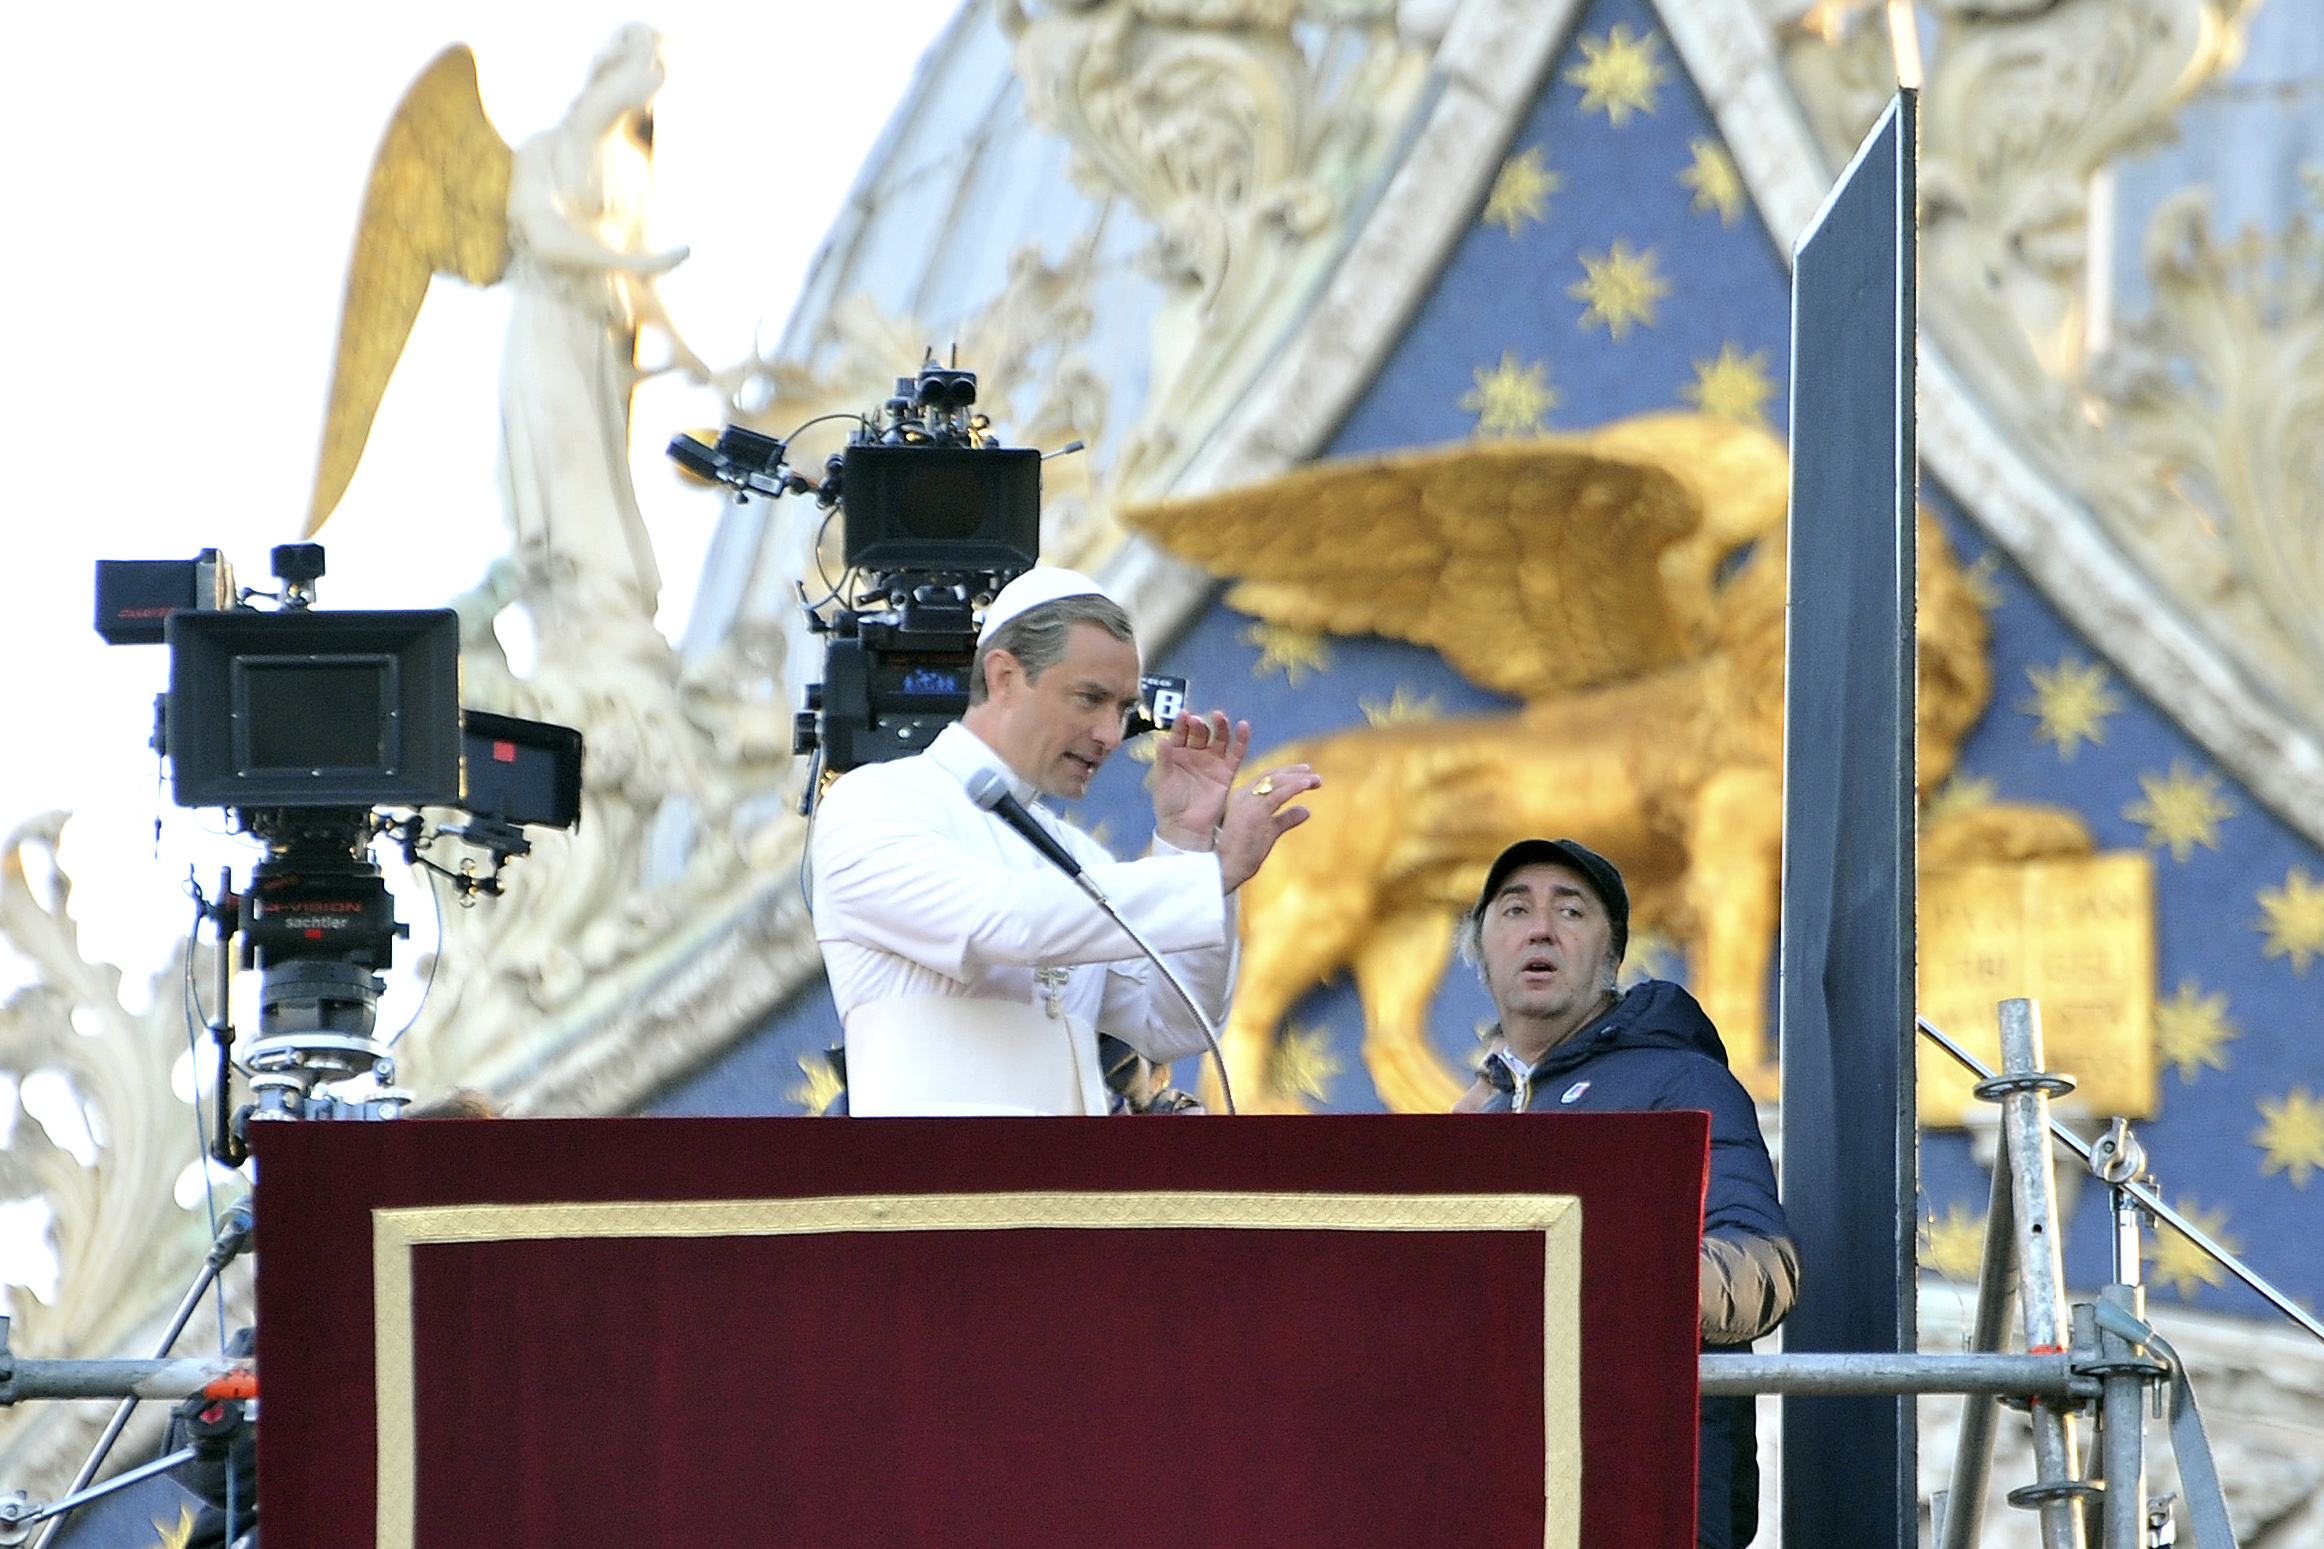 """Actor Jude Law, center, and Italian director Paolo Sorrentino, right, work on the set of Sorrentino's TV series """"The Young Pope"""", in Venice's St. Mark's Square, Italy, Tuesday, Jan. 12, 2016. Law plays the part of a fictional Pope Pius XIII as the first American pope. (AP Photo/Luigi Costantini)"""